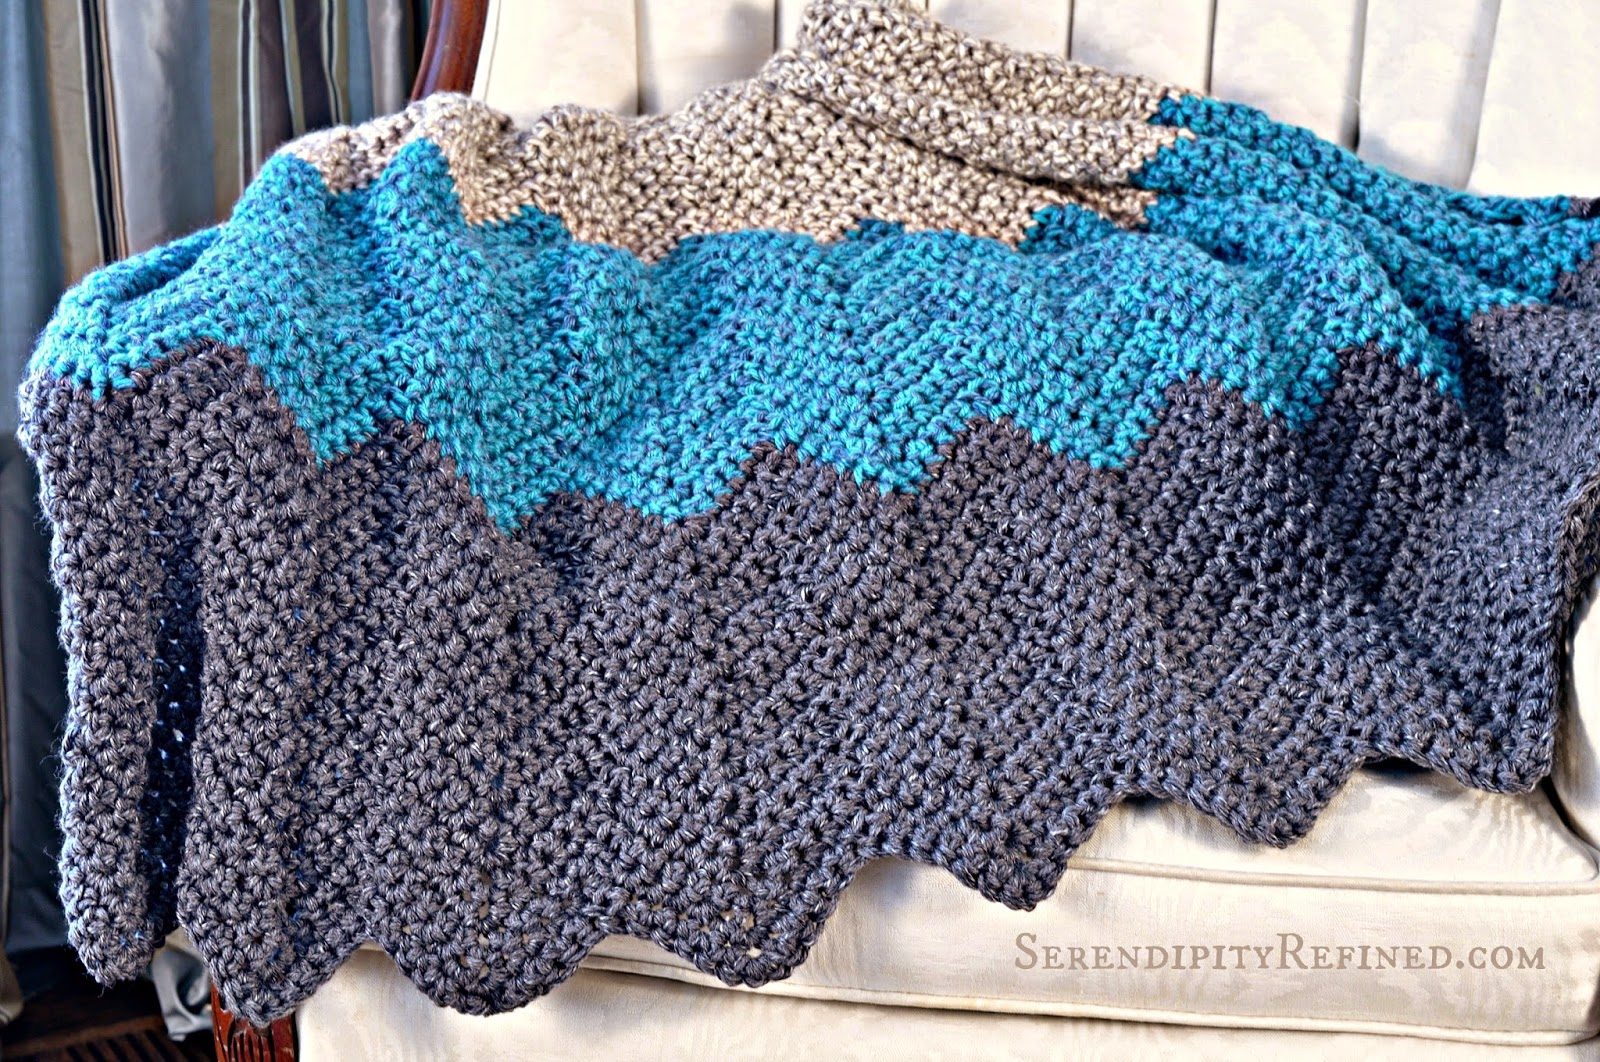 Free Pattern For Single Crochet Ripple Afghan : Serendipity Refined Blog: Easy Crochet Throw Blanket Pattern